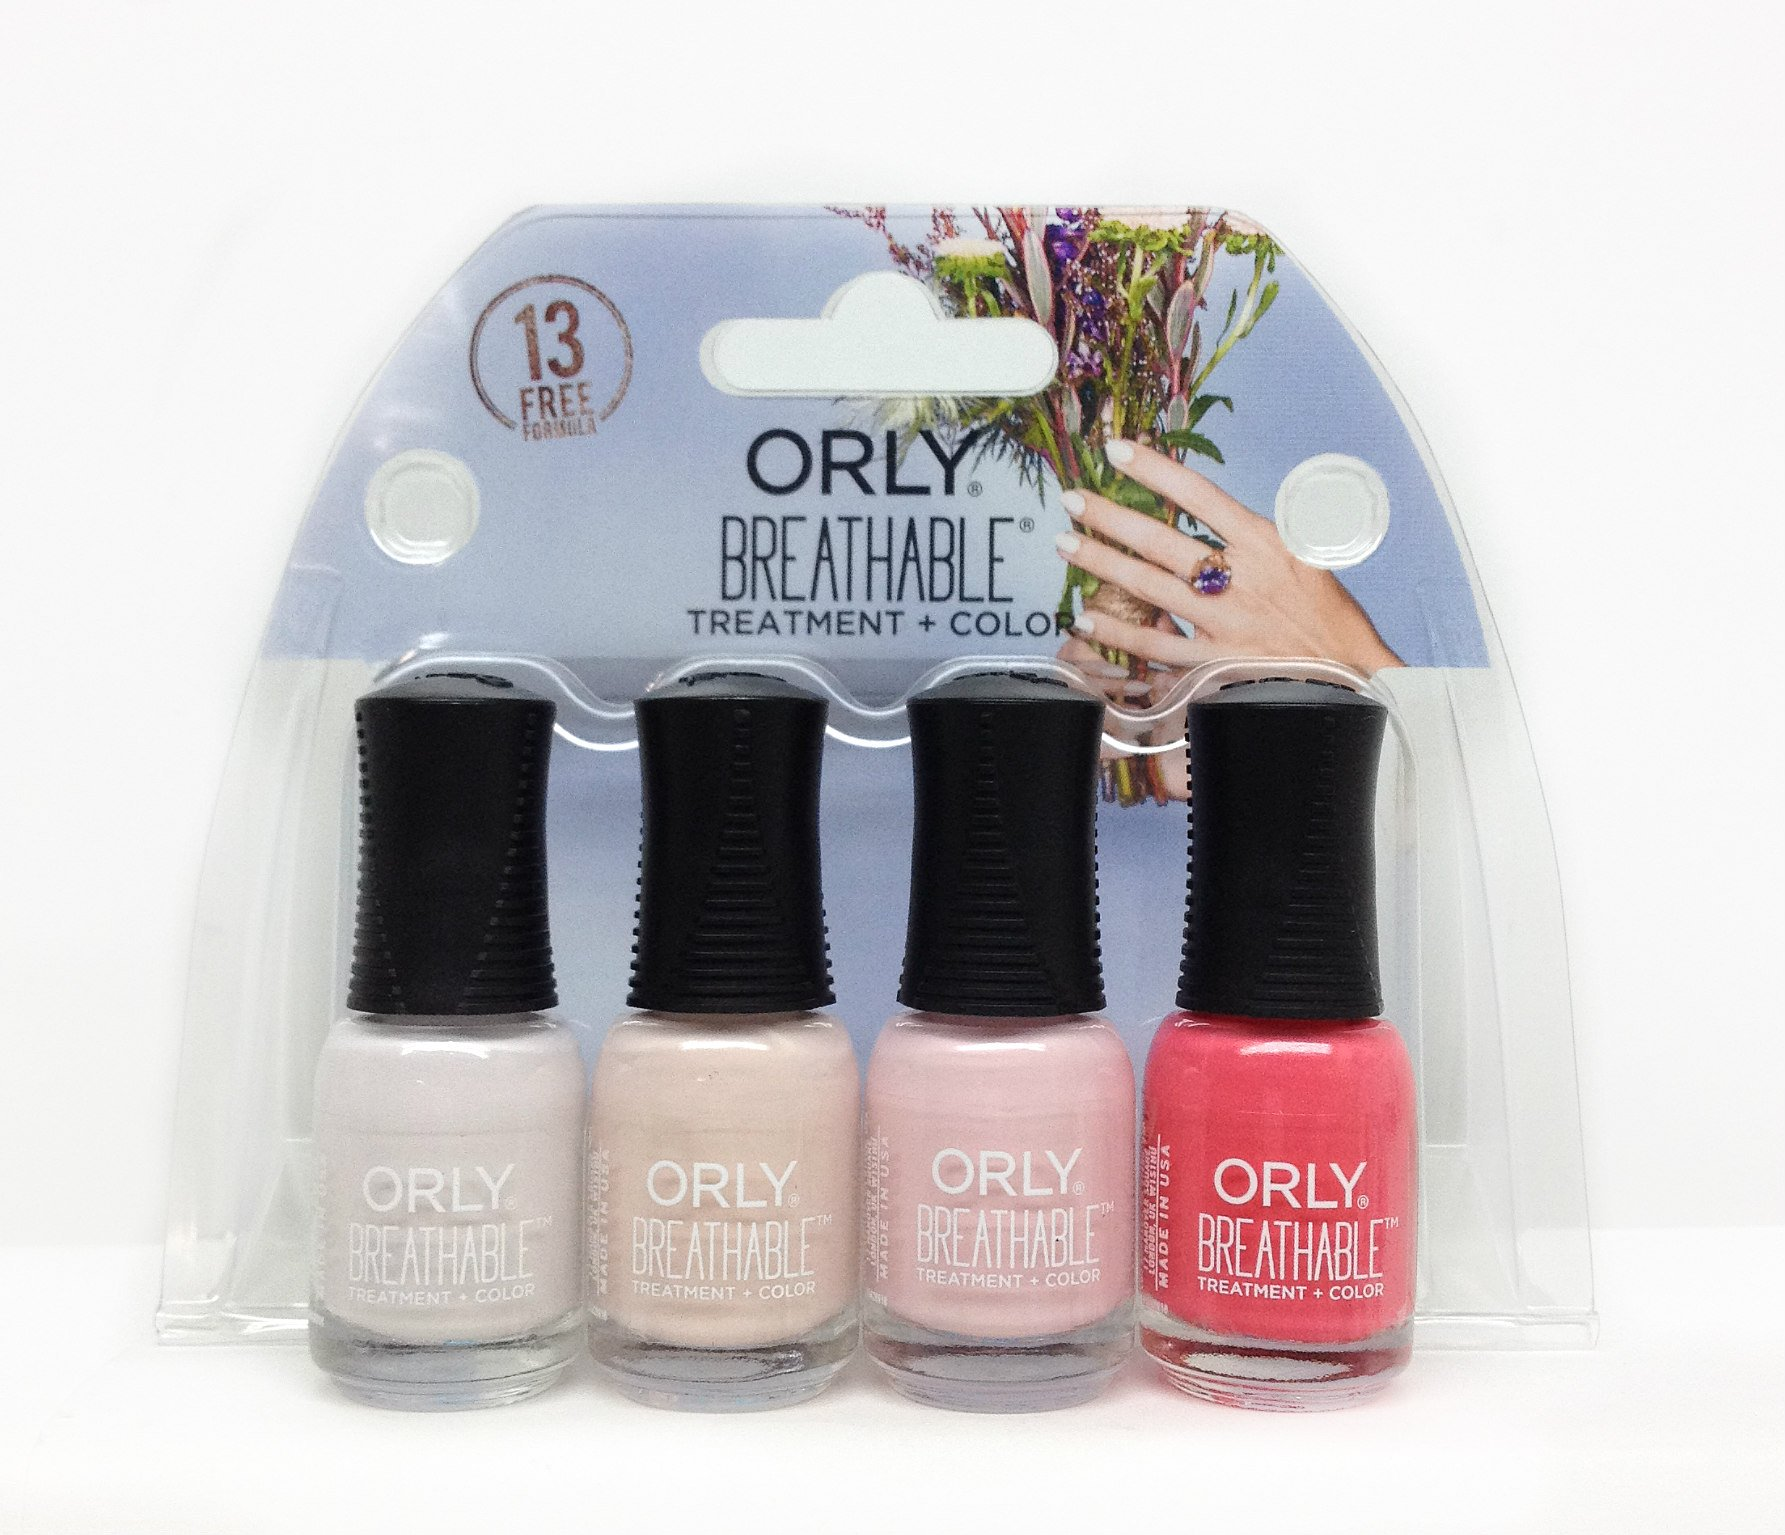 Orly Breathable Treatment Plus 061017X Color 4 Piece Mini Kit for Women